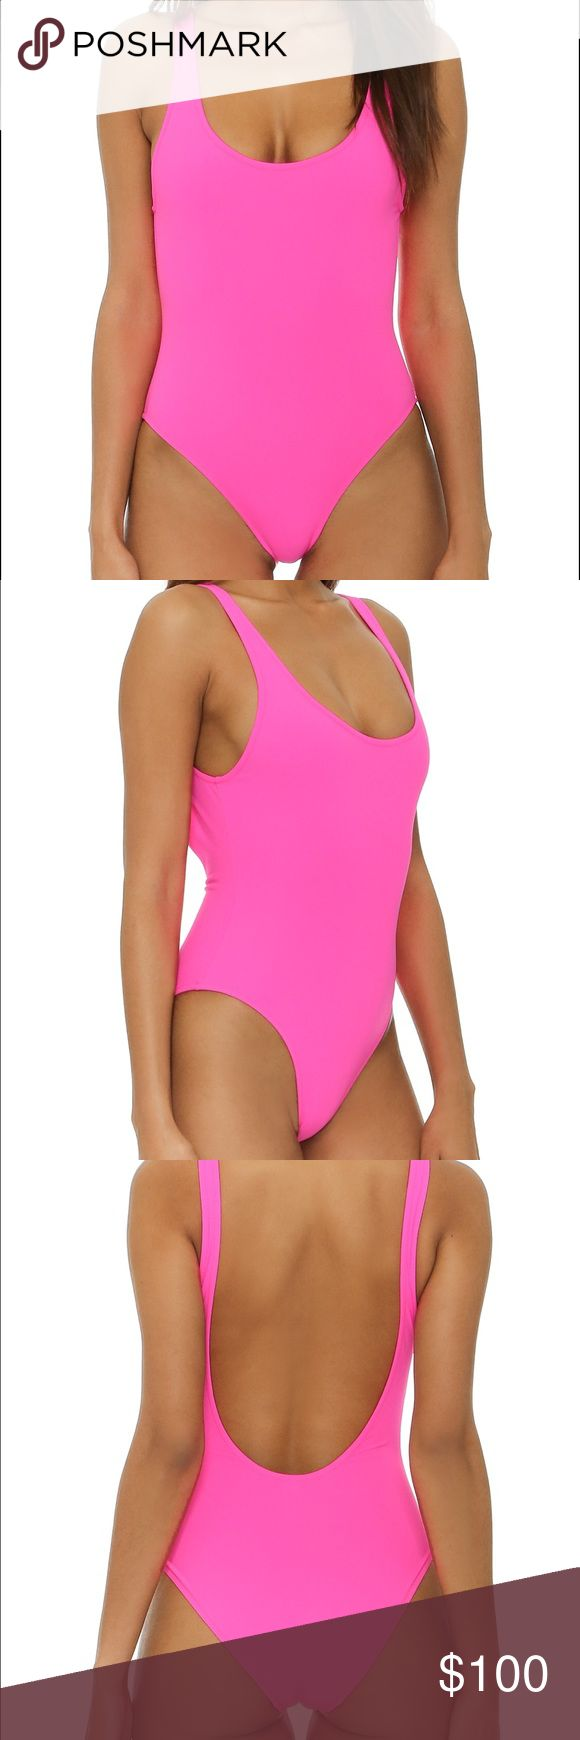 Solid and striped hot pink Anne-Marie one piece Solid and Striped hot pink one piece. NWOT. Still has hygiene liner. It is a size Large. Super cute! Wish it fit me! Solid and Striped Swim One Pieces